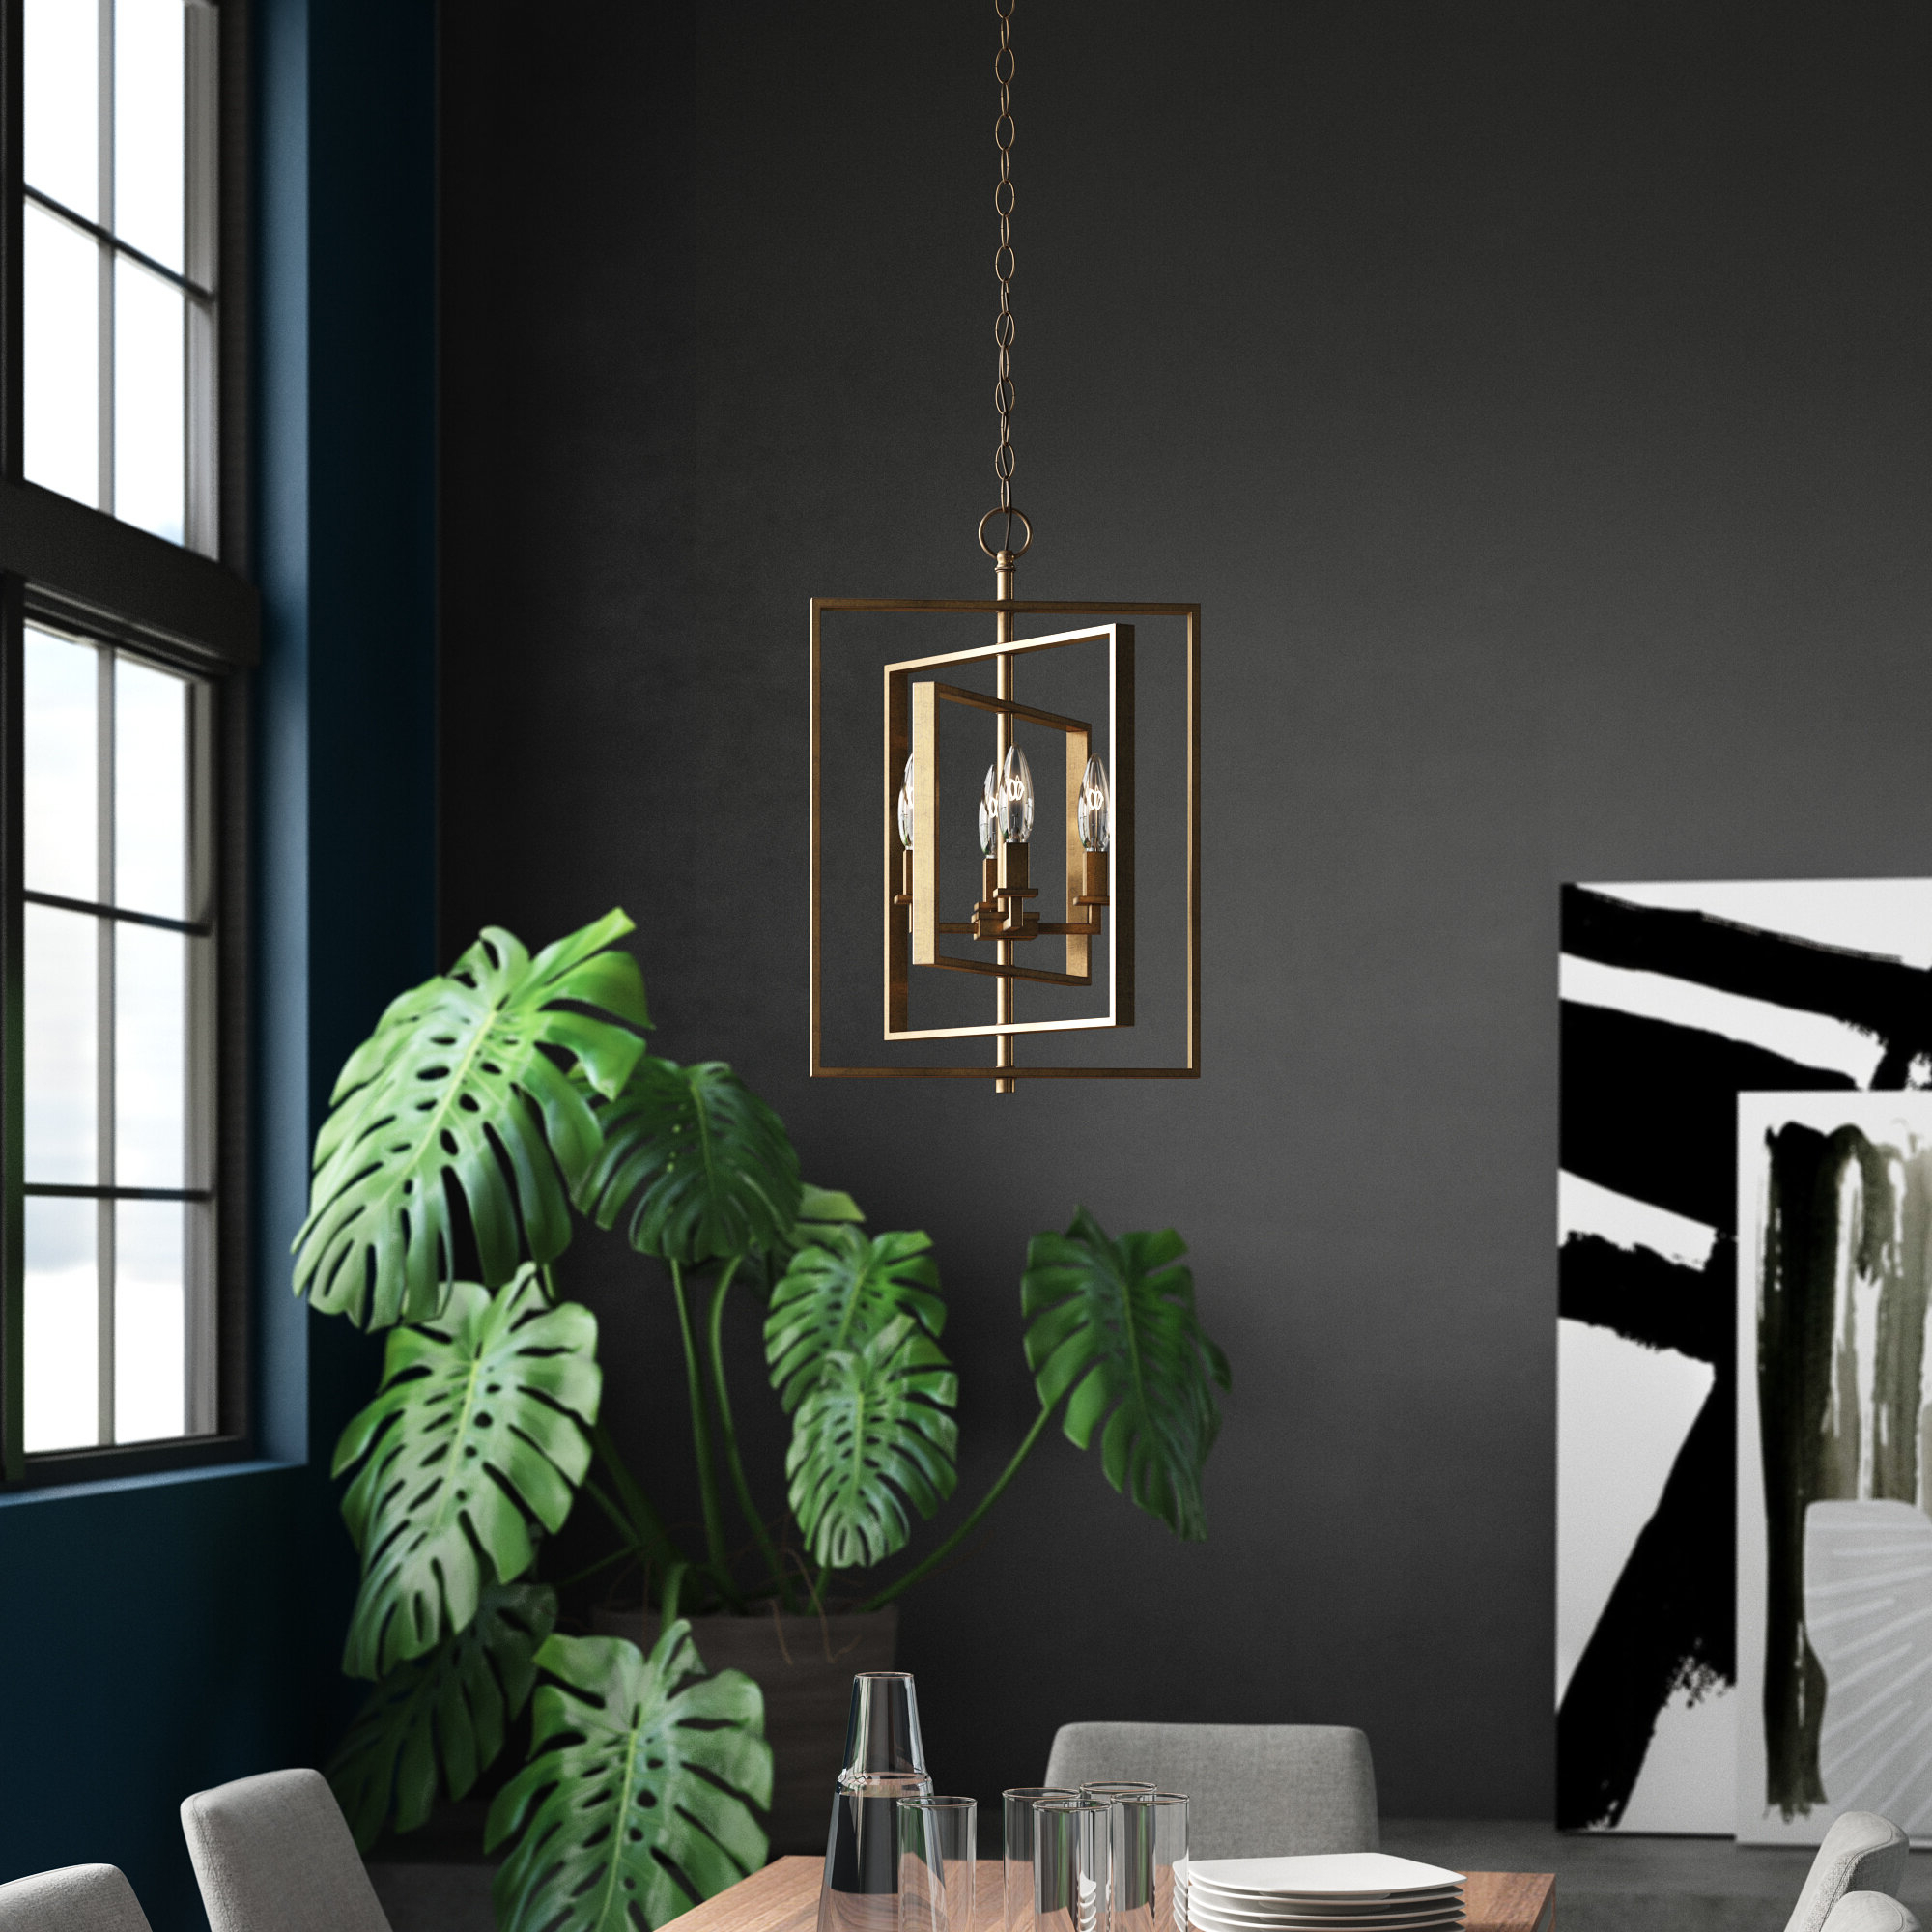 Yarnell 4 Light Square/rectangle Chandelier Regarding Fashionable Delon 4 Light Square Chandeliers (View 25 of 25)